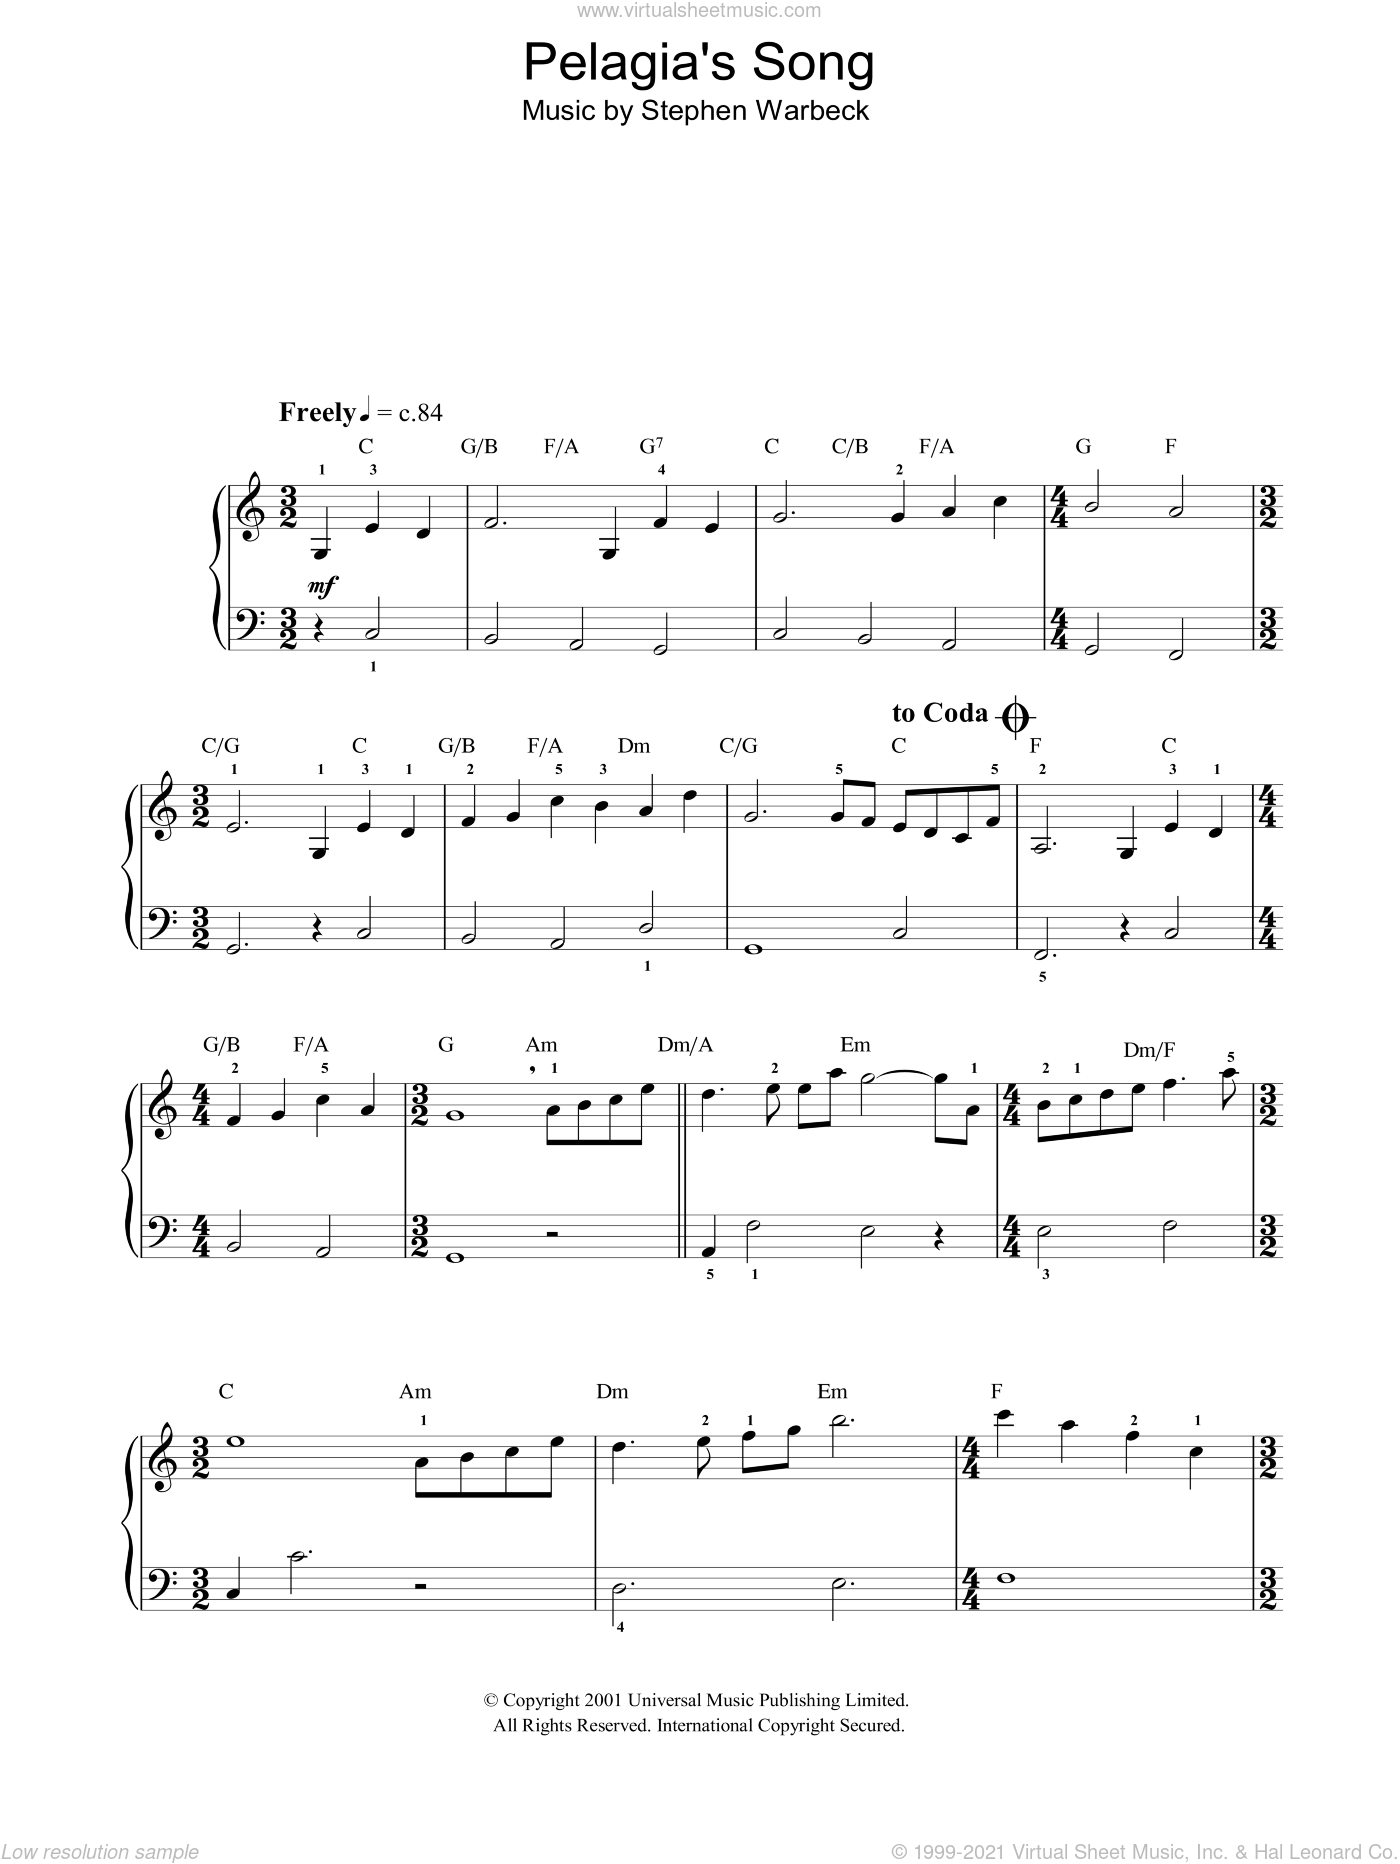 Pelagia's Song (Ricordo Ancor) (from Captain Corelli's Mandolin) sheet music for voice, piano or guitar by Stephen Warbeck